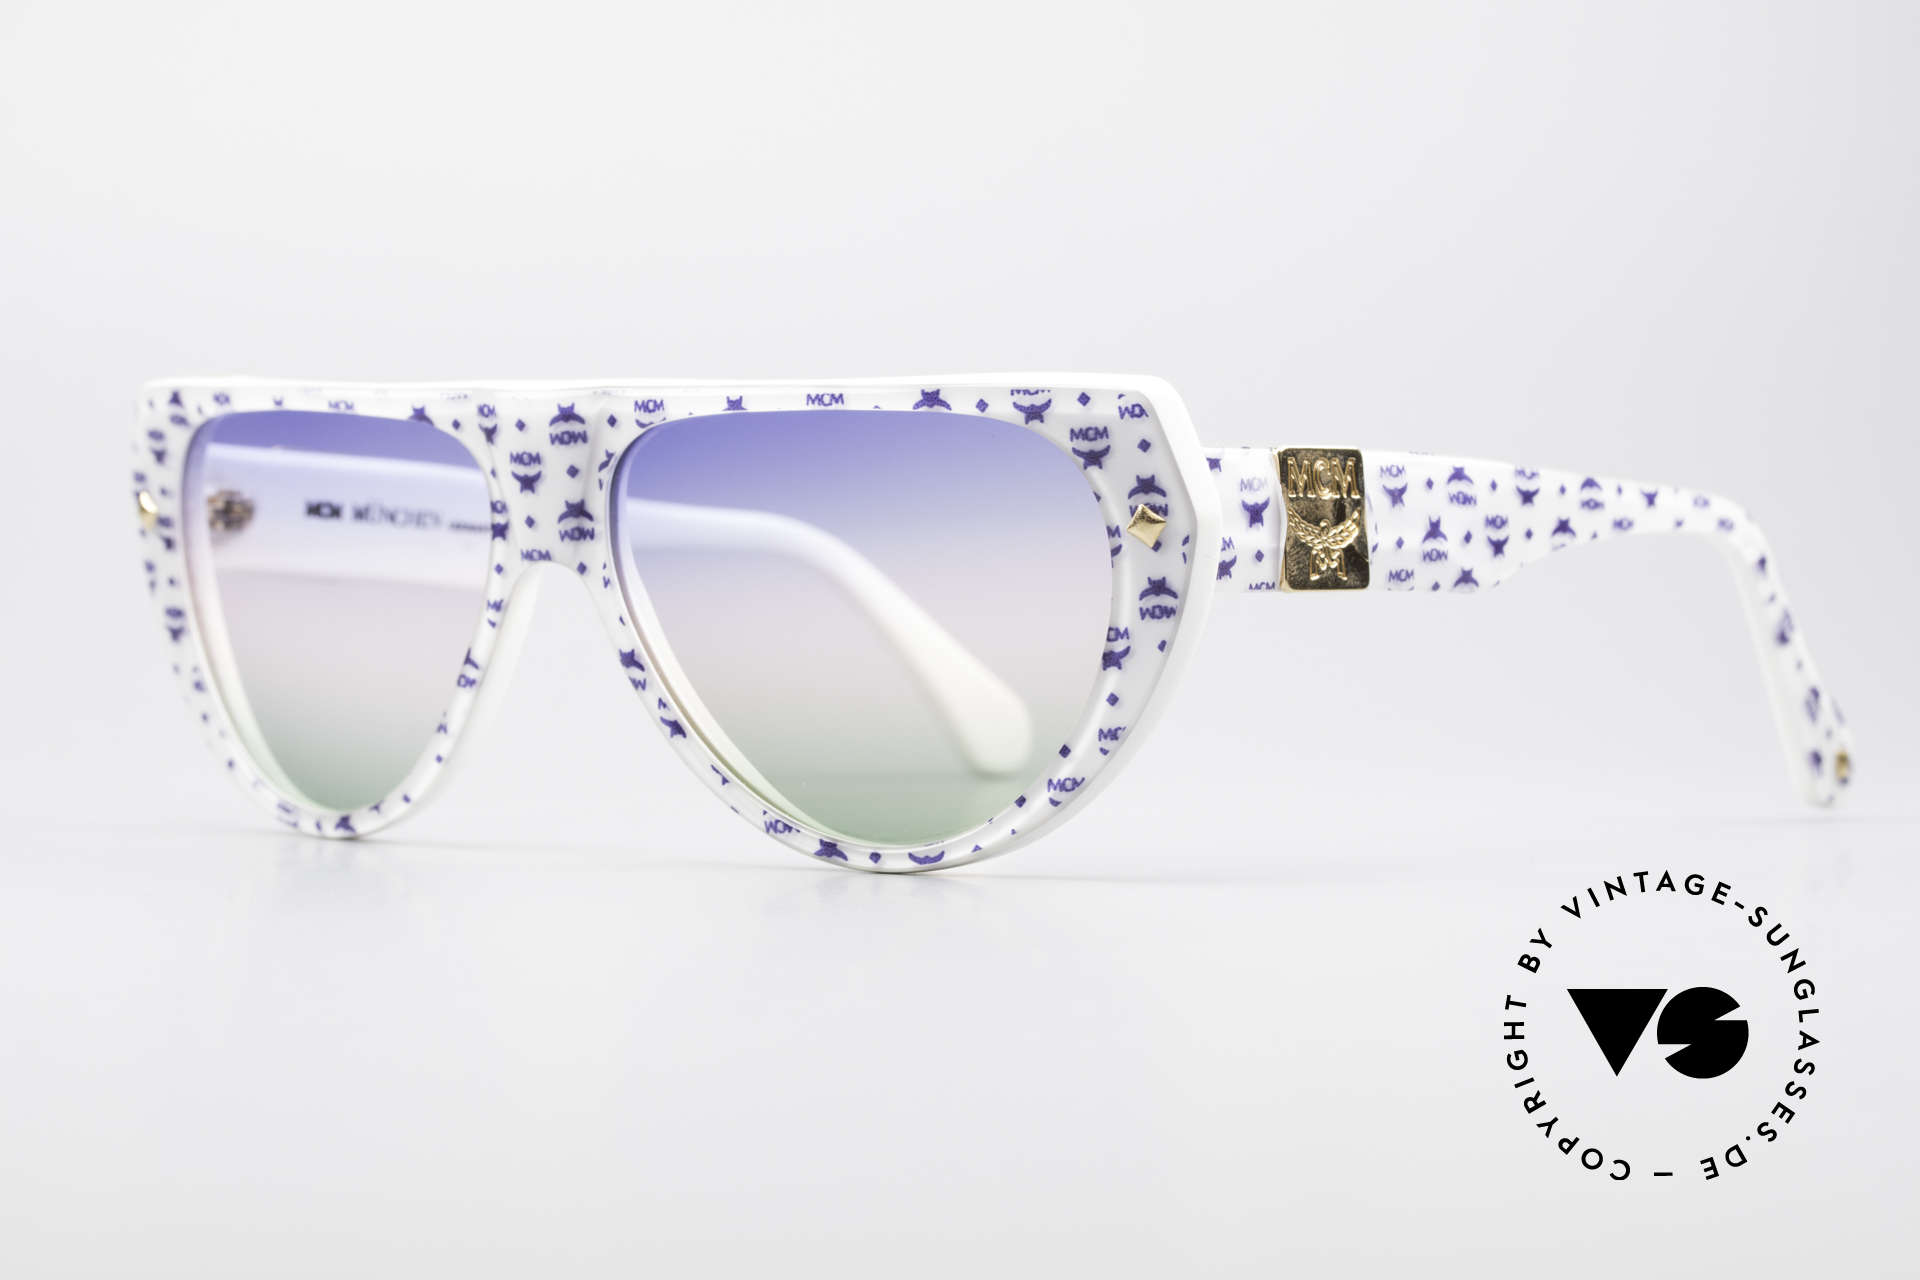 MCM München A1 Hip Hop Designer Sunglasses, massive frame & convincing quality (handmade), Made for Men and Women